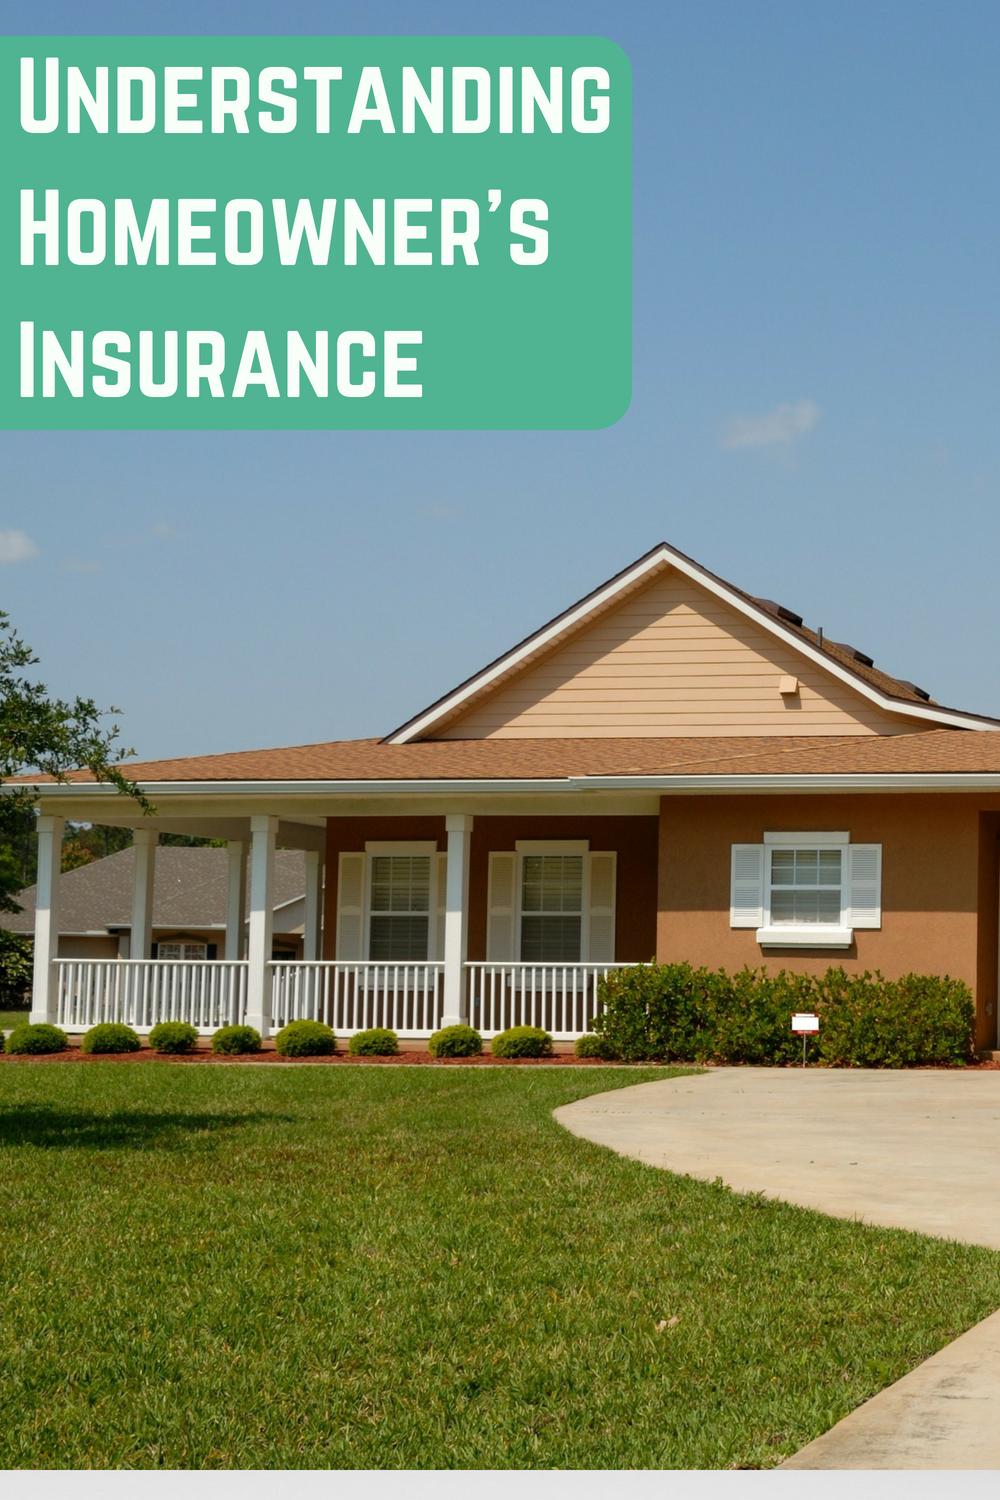 How To Choose The Right Homeowners Insurance Deductible Explained Homeowners Insurance Homeowner Insurance Deductible